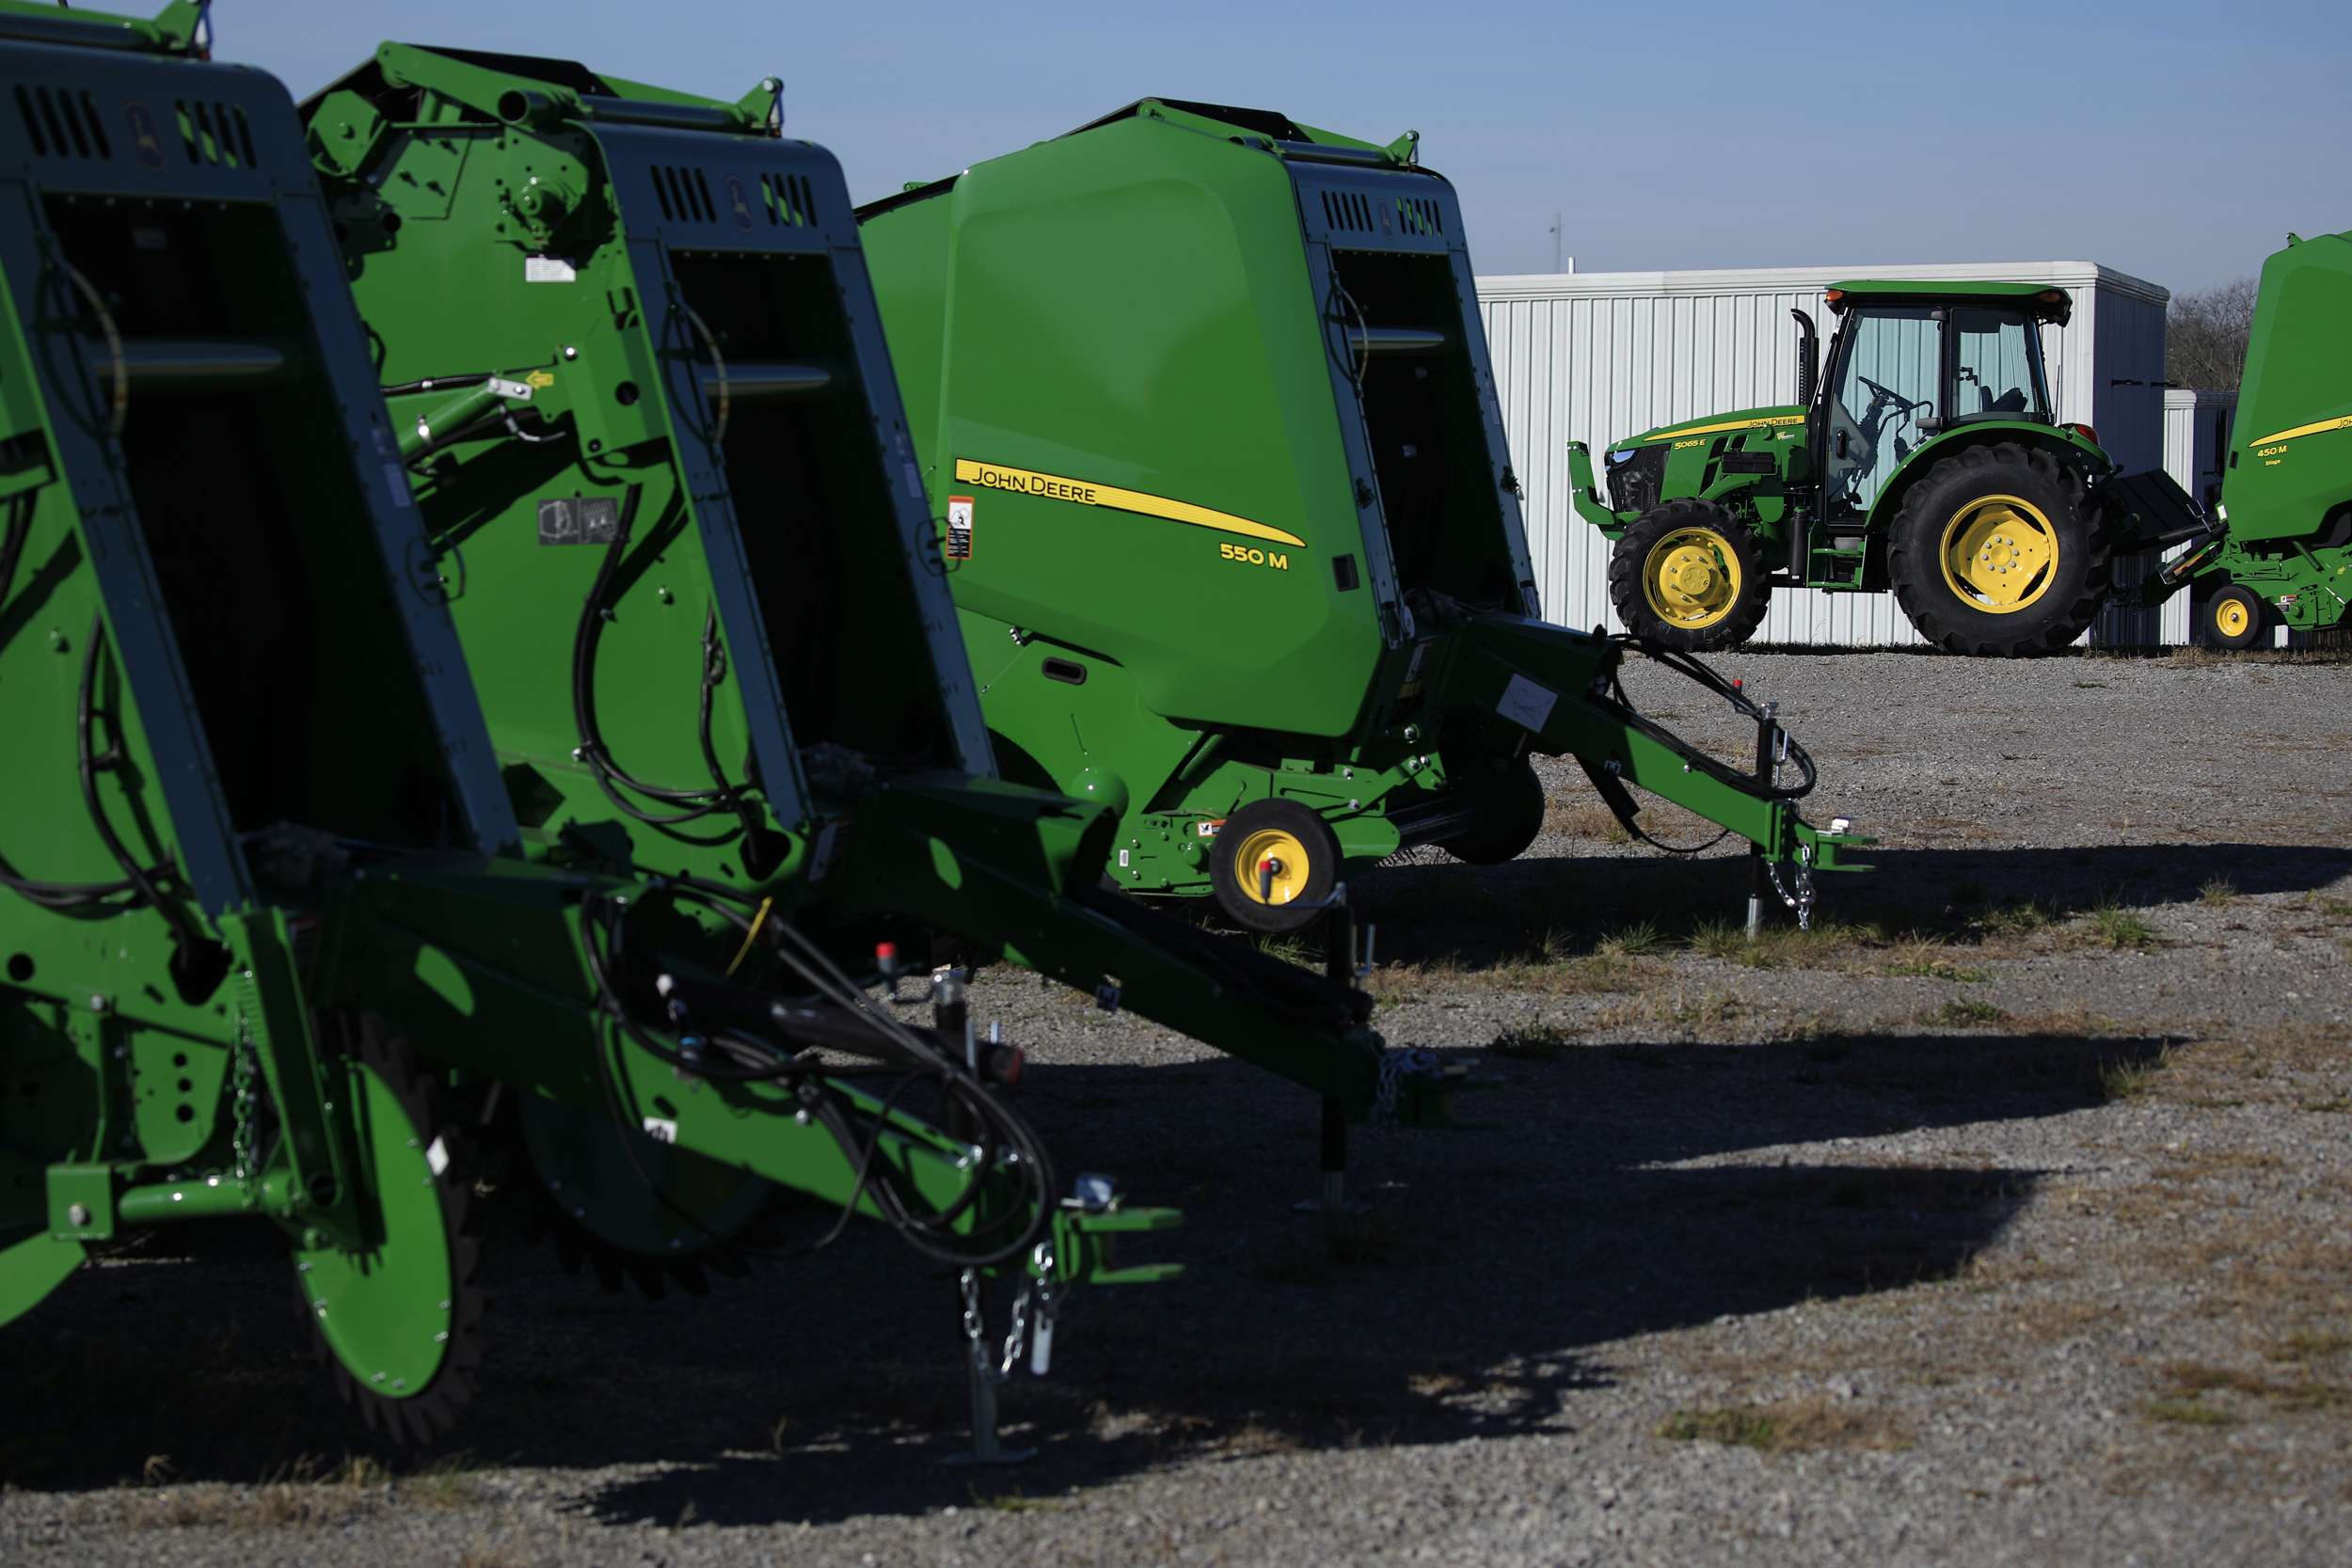 More-than-10,000-Deere-&-Co.-workers-on-strike-after-failed-deal-with-union